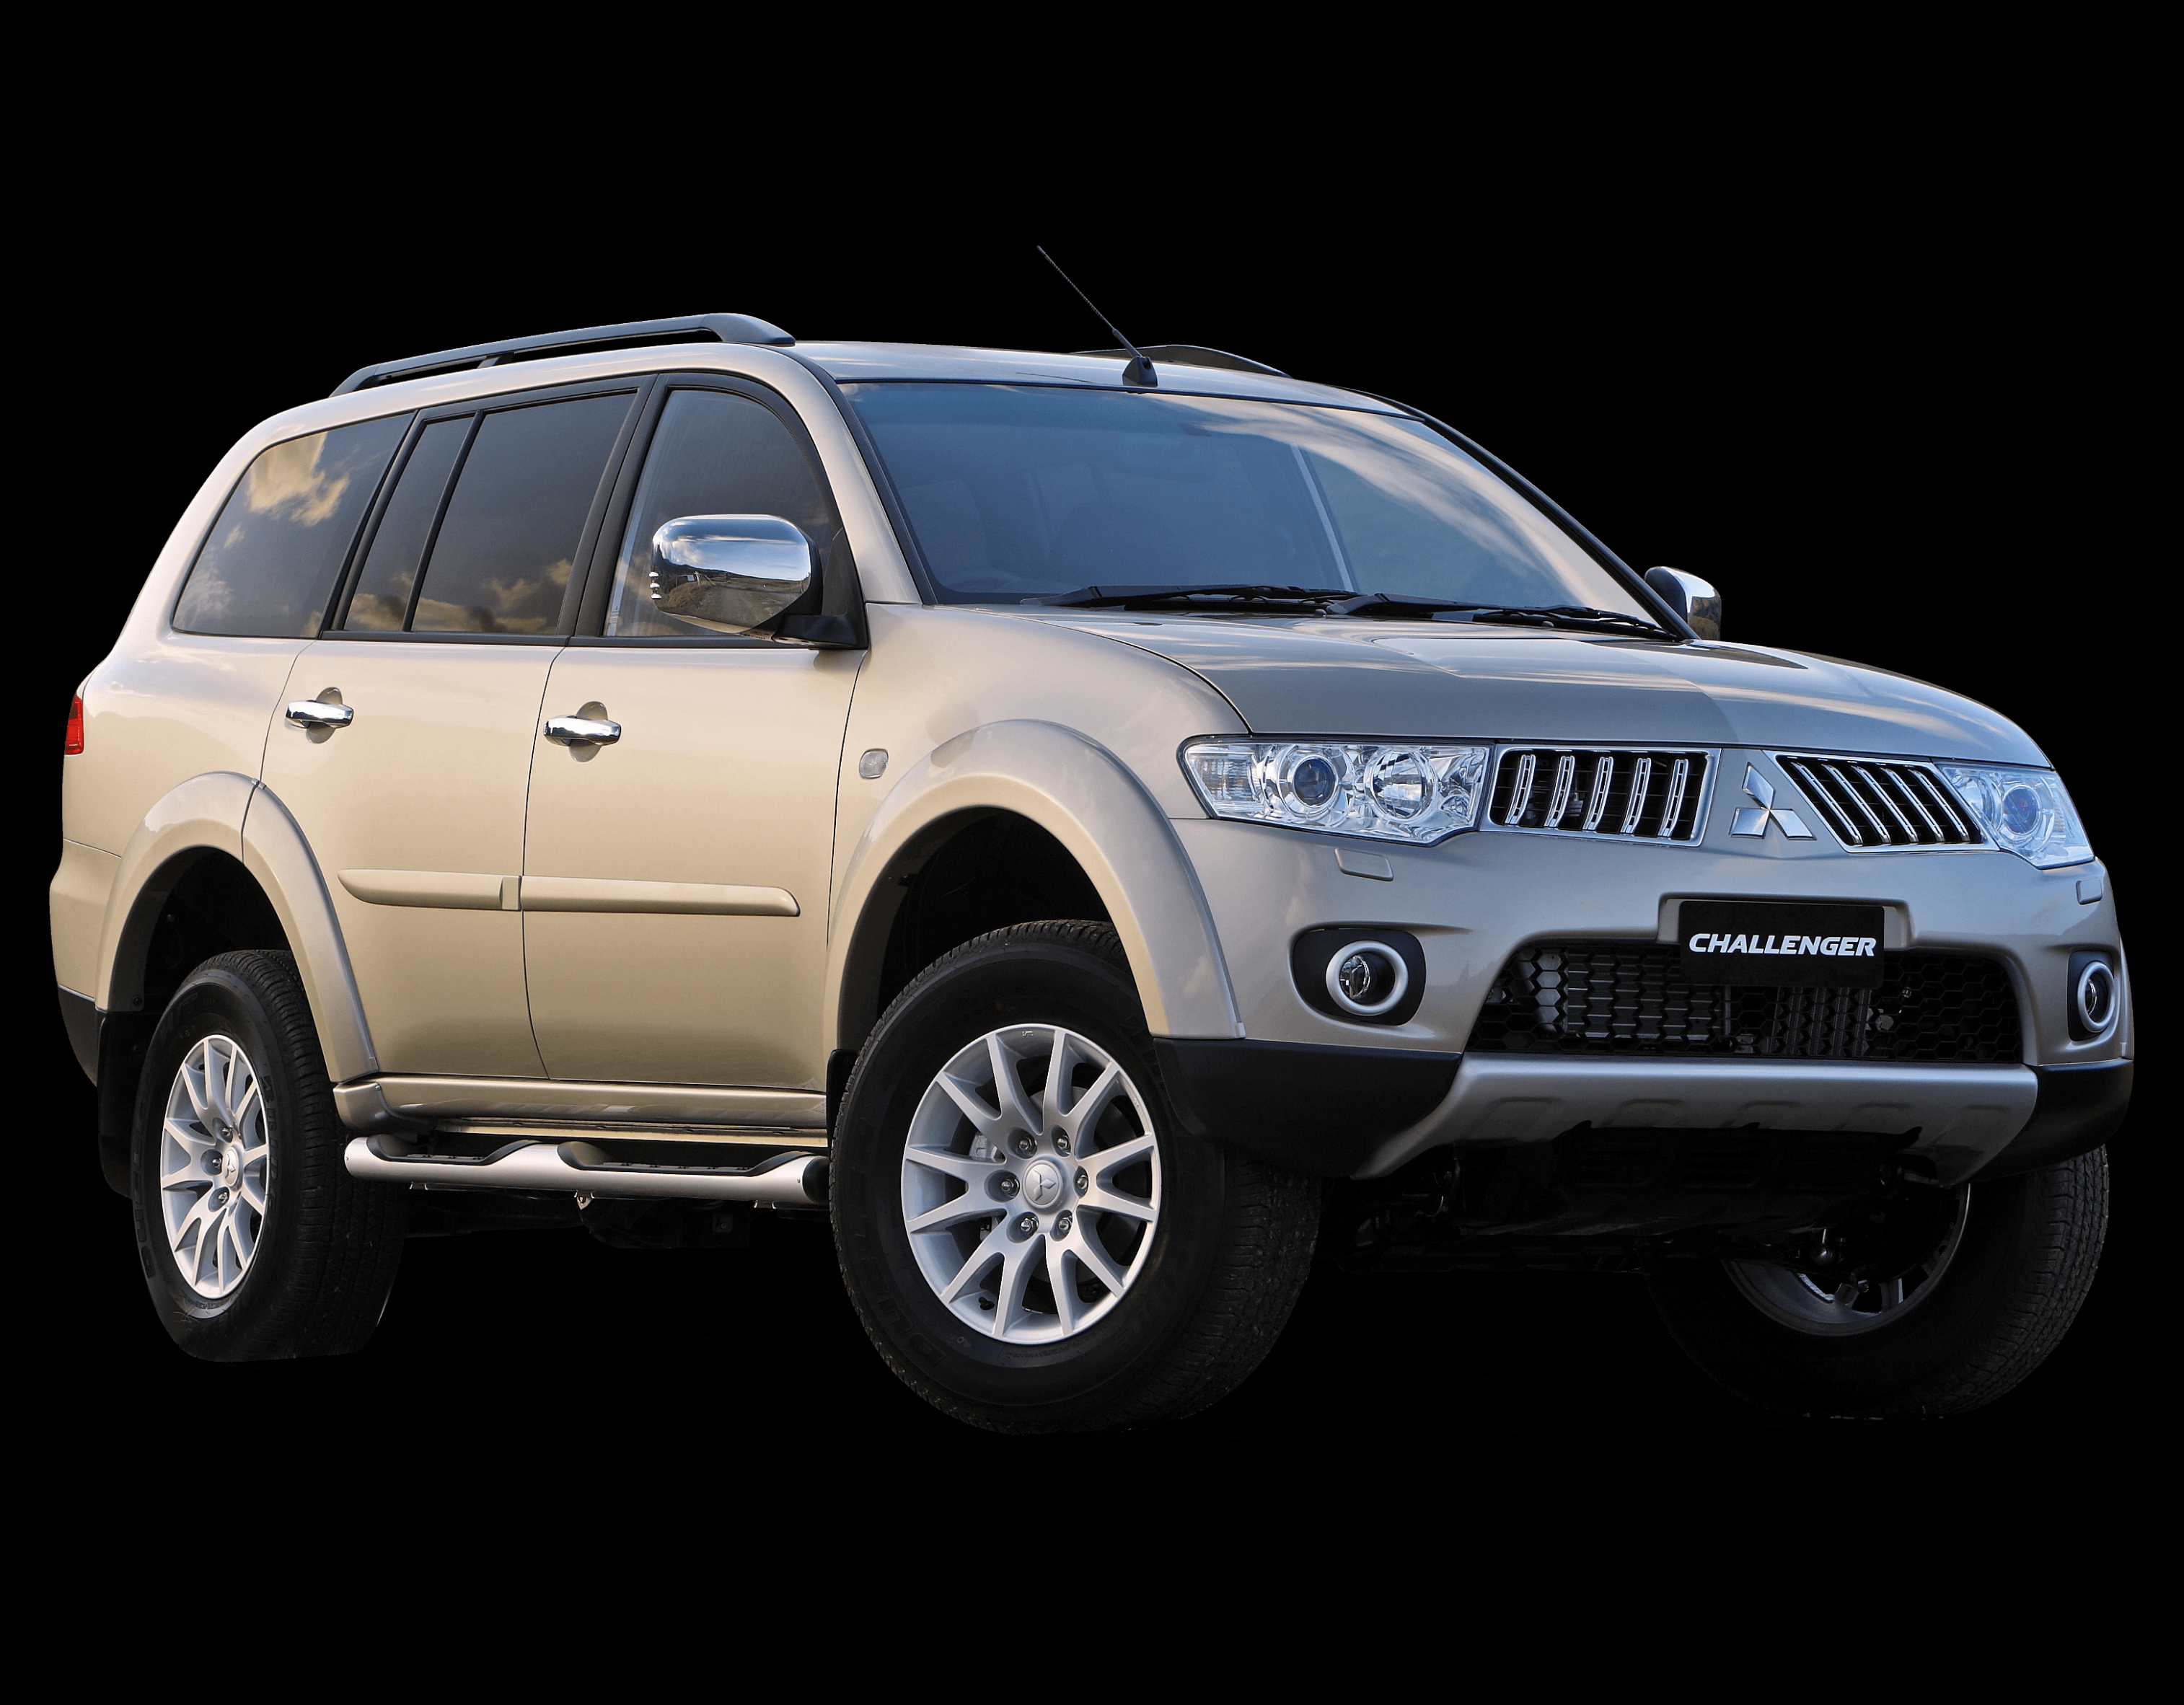 Mitsubishi Challenger Review, For Sale, Price, Specs & Models in ..